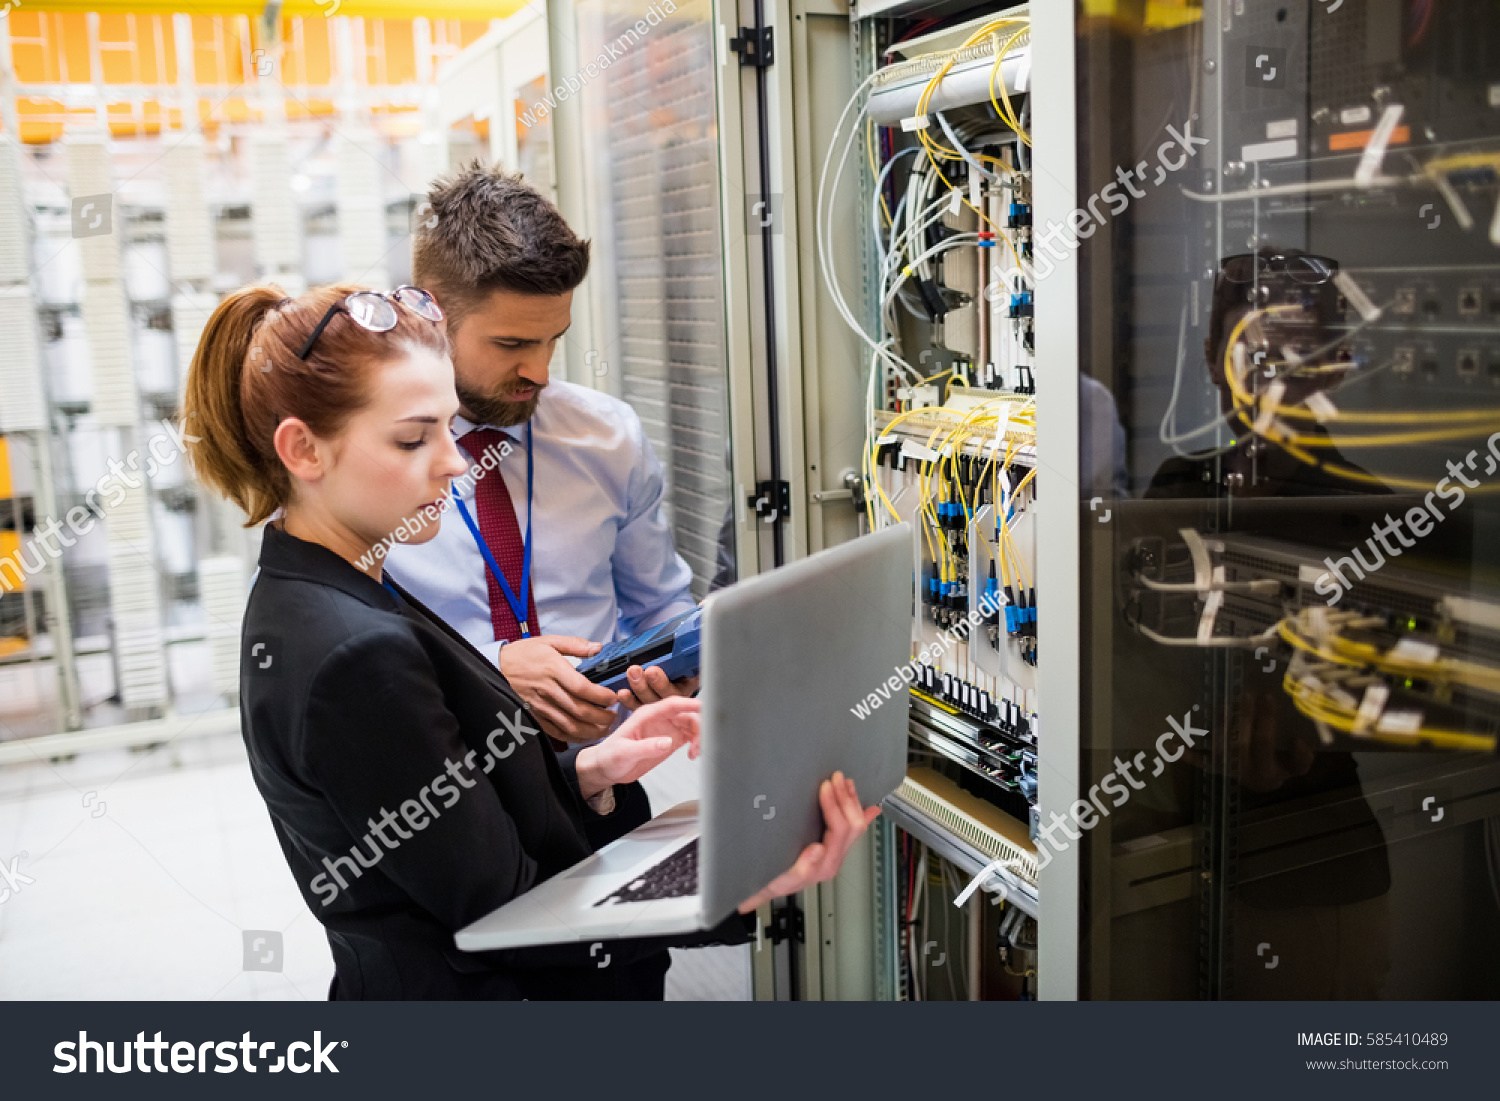 stock-photo-technicians-using-laptop-while-analyzing-server-in-server-room-585410489.jpg